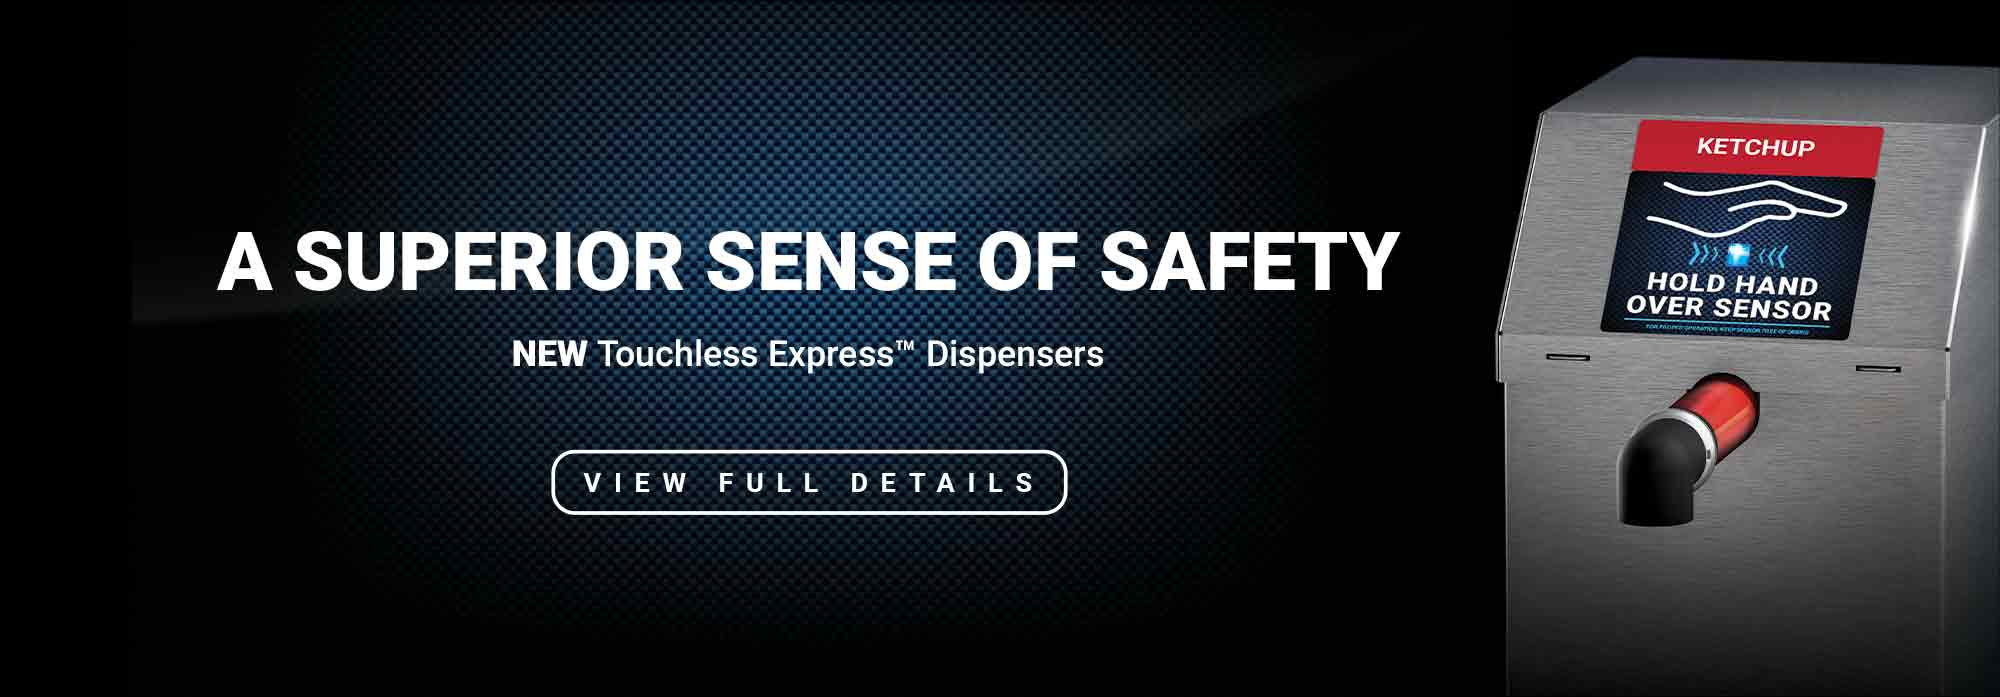 A Superior Sense of Safety. New Touchless Express Dispensers